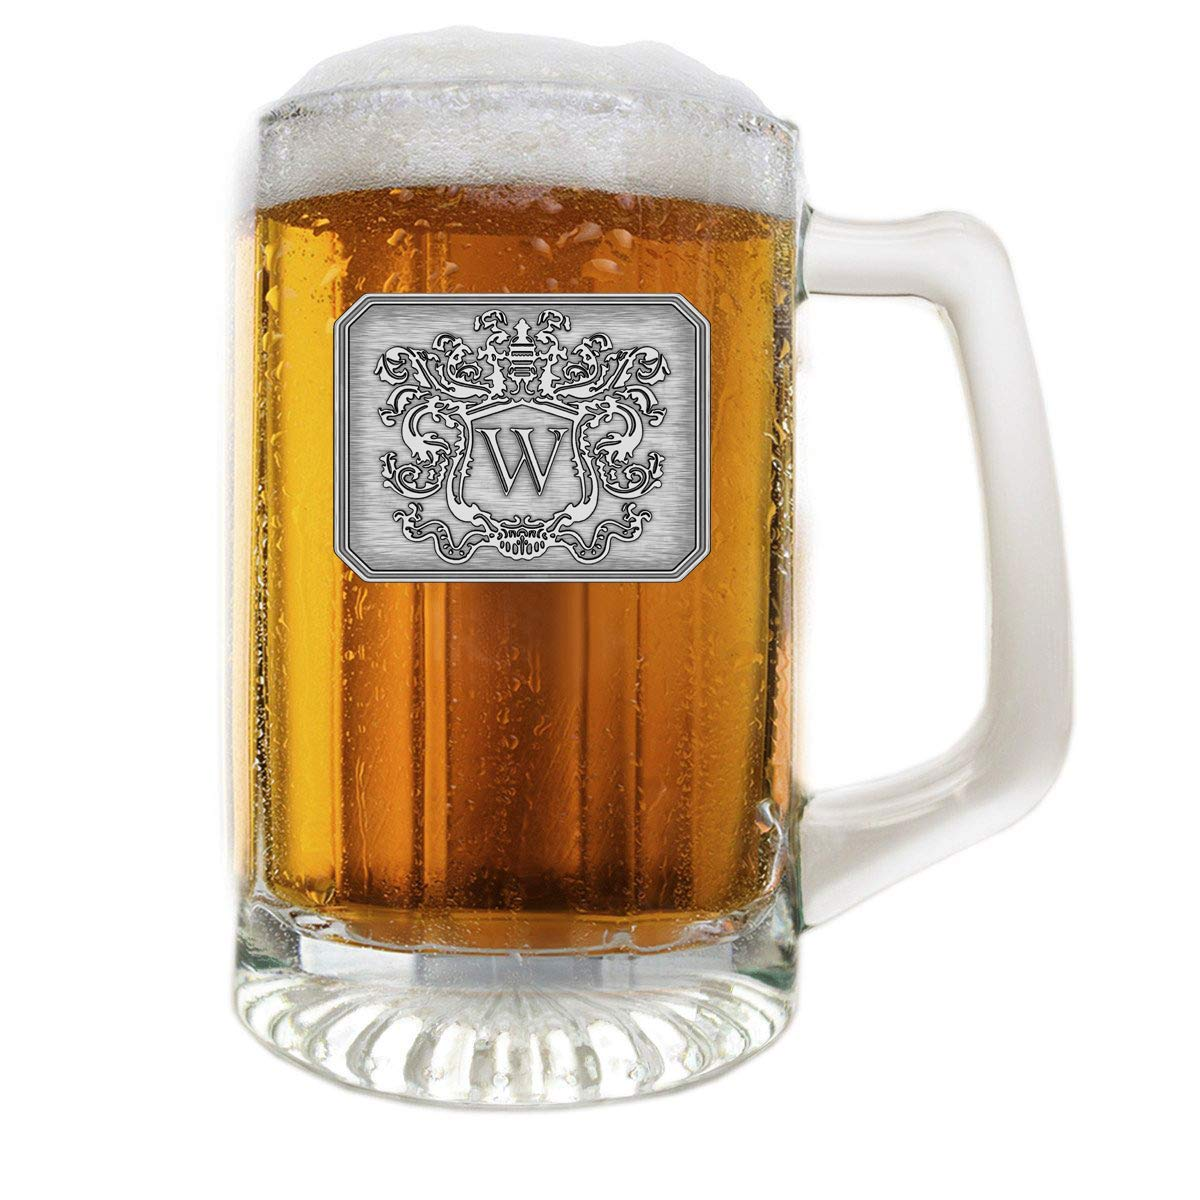 beer mug with personalized monogram